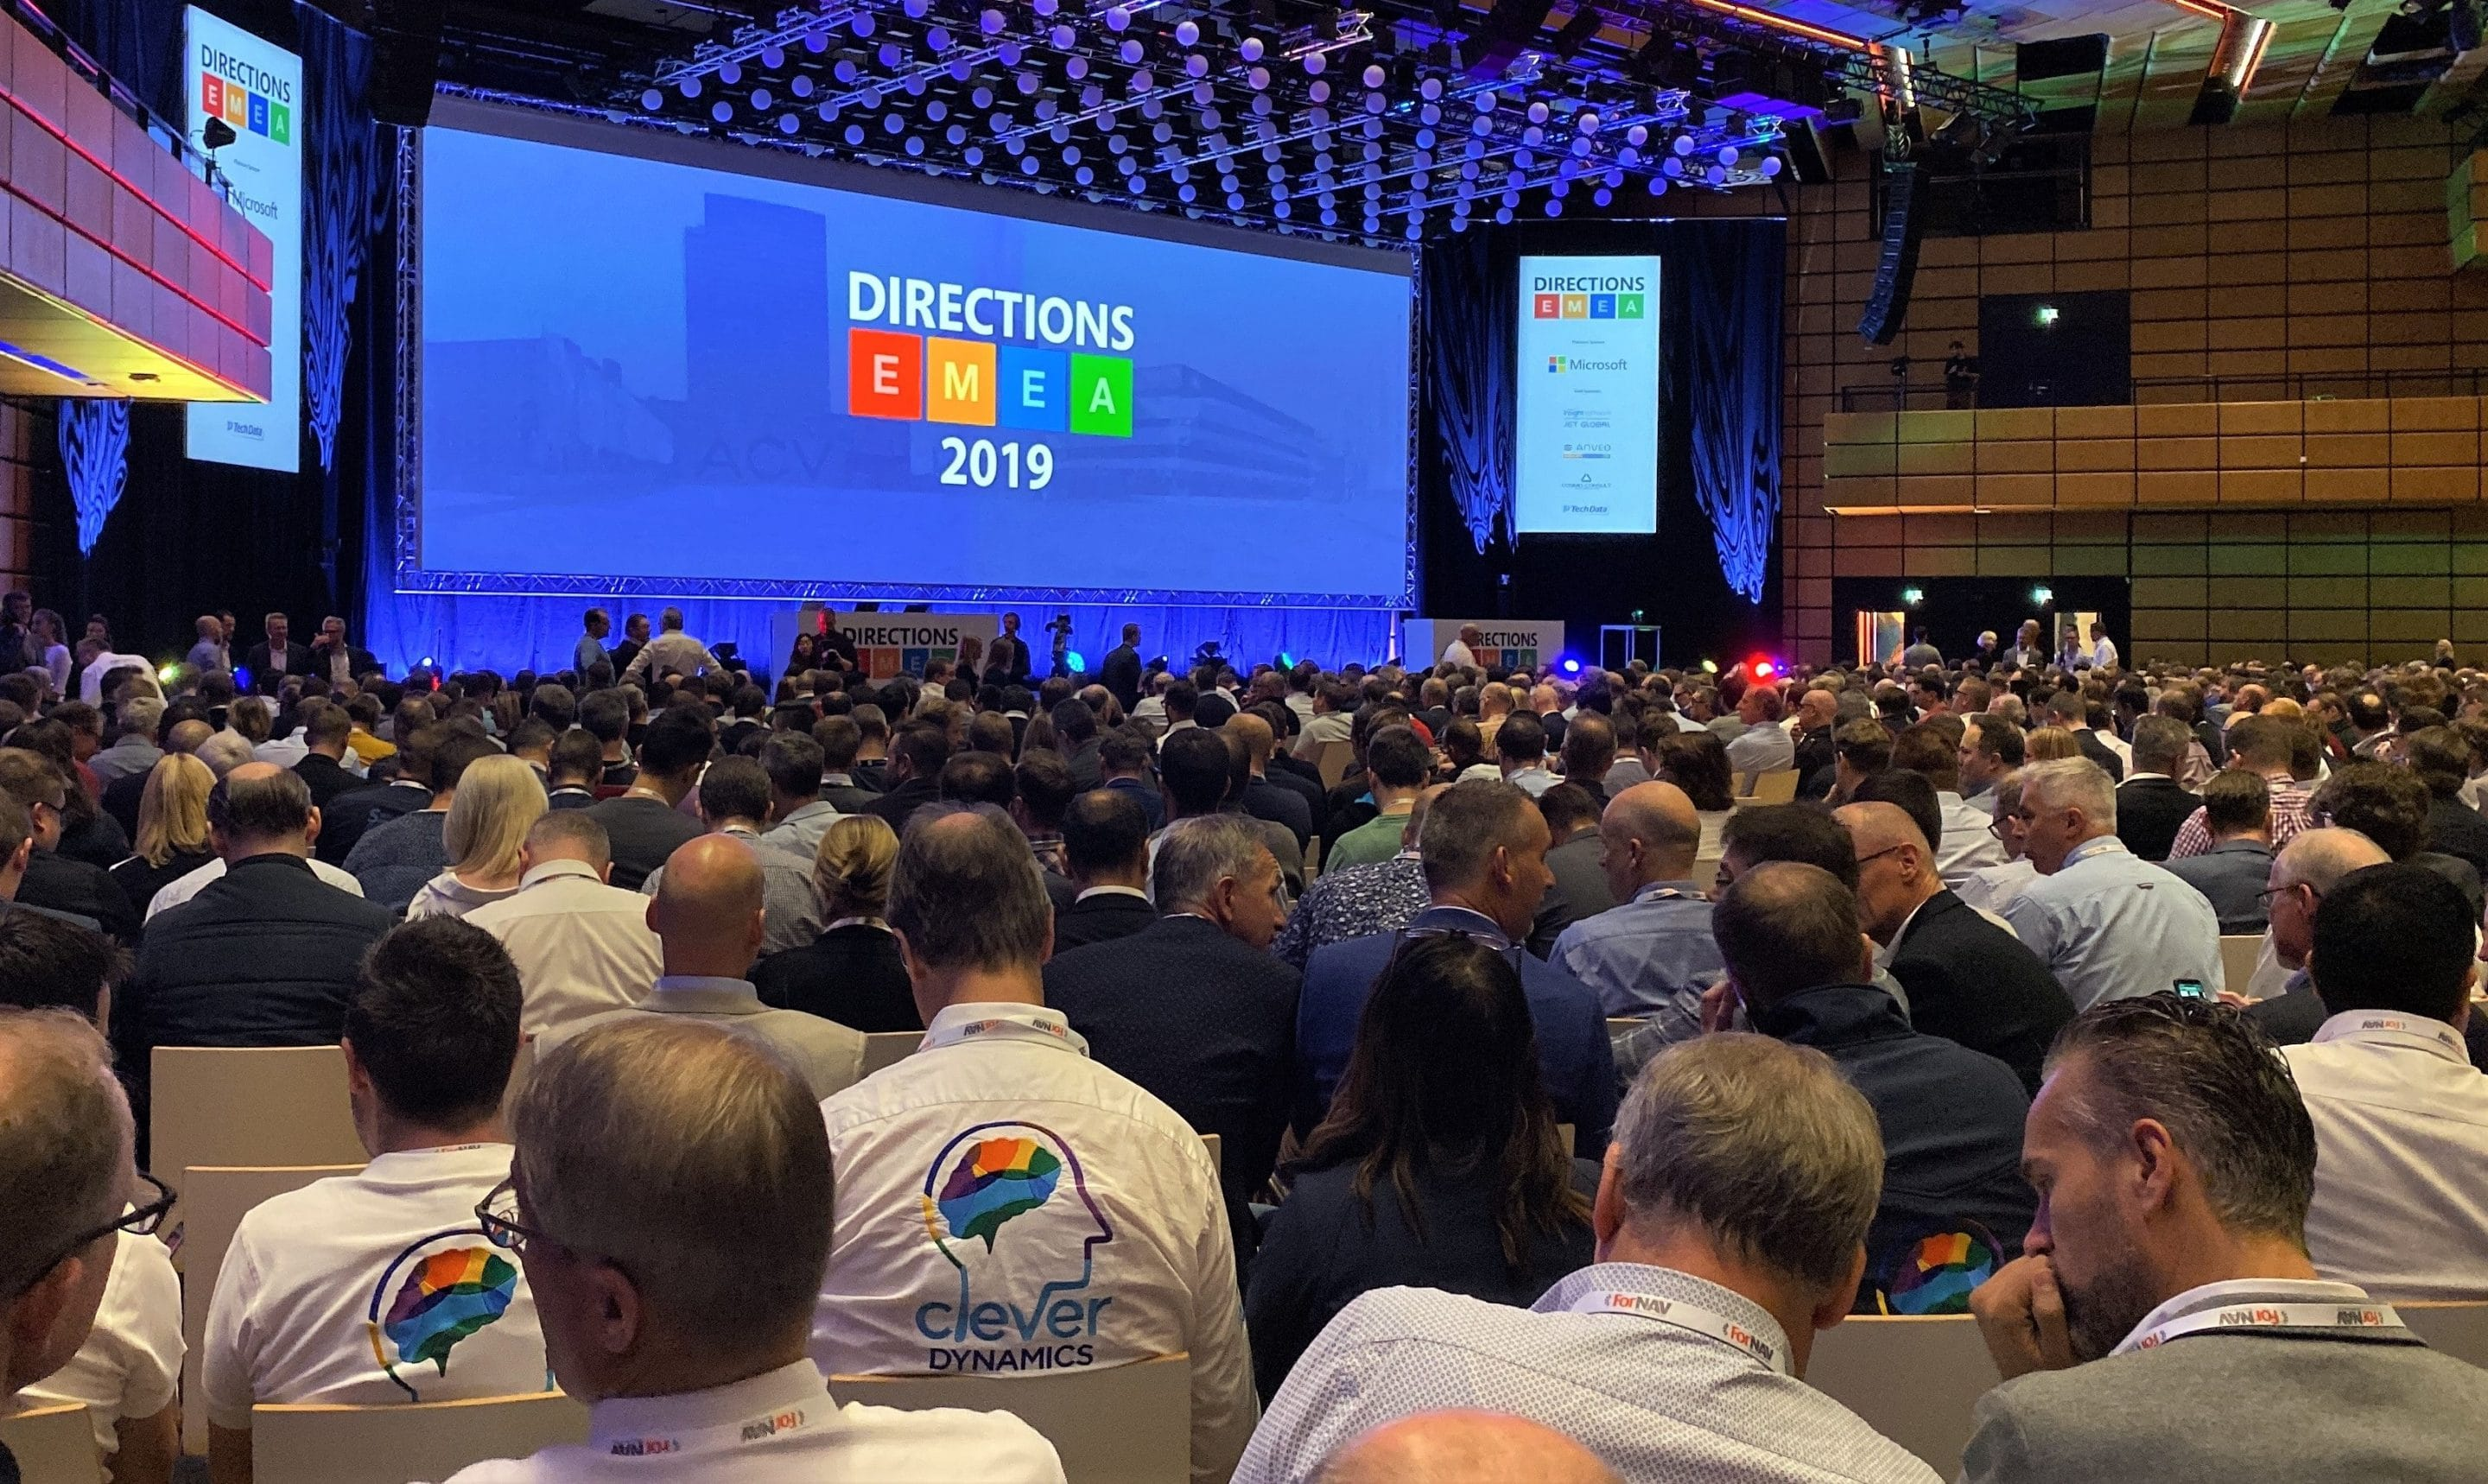 The Microsoft Directions EMEA 2019 conference in Vienna